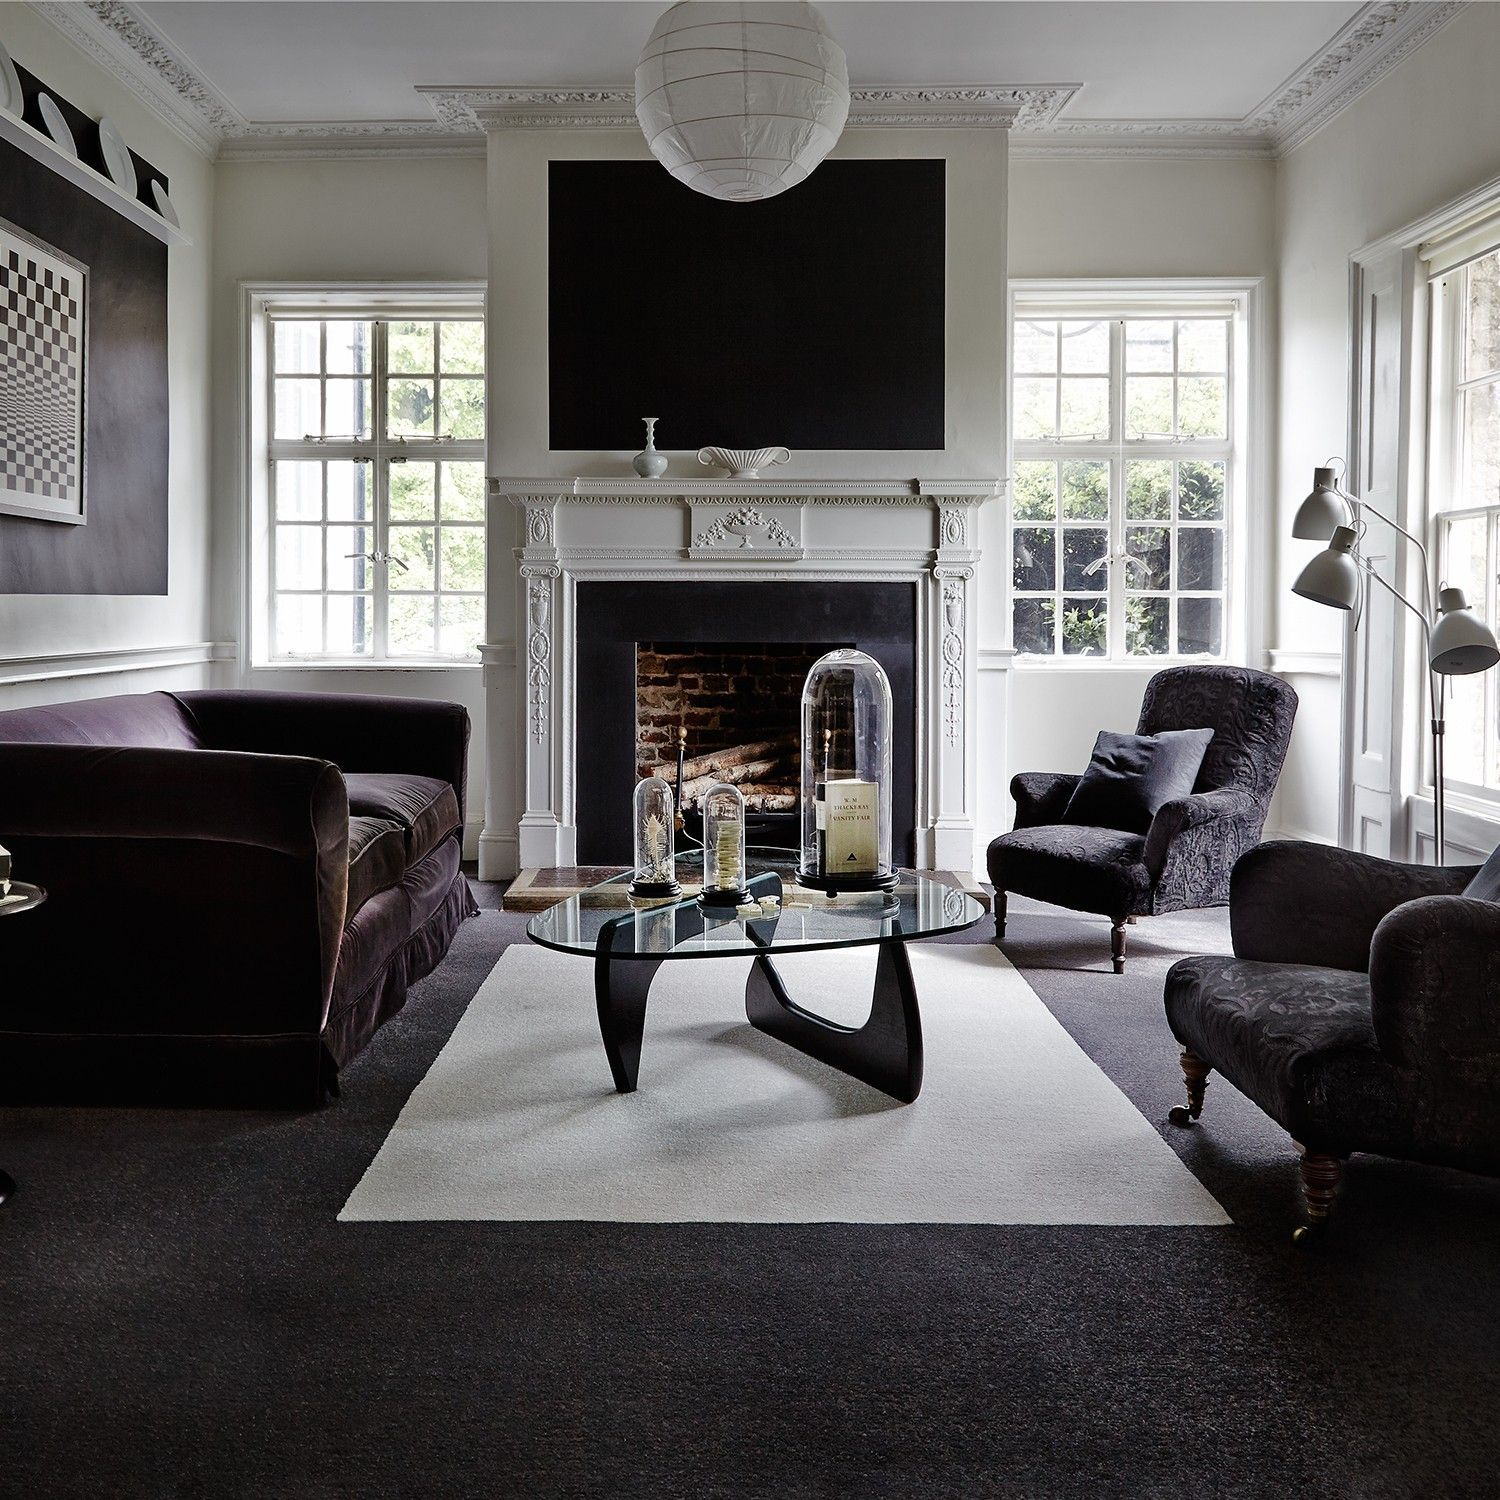 Awesome What Colour Furniture Goes With Dark Grey Carpet And Description Grey Carpet Living Room Dark Grey Carpet Living Room Living Room Carpet